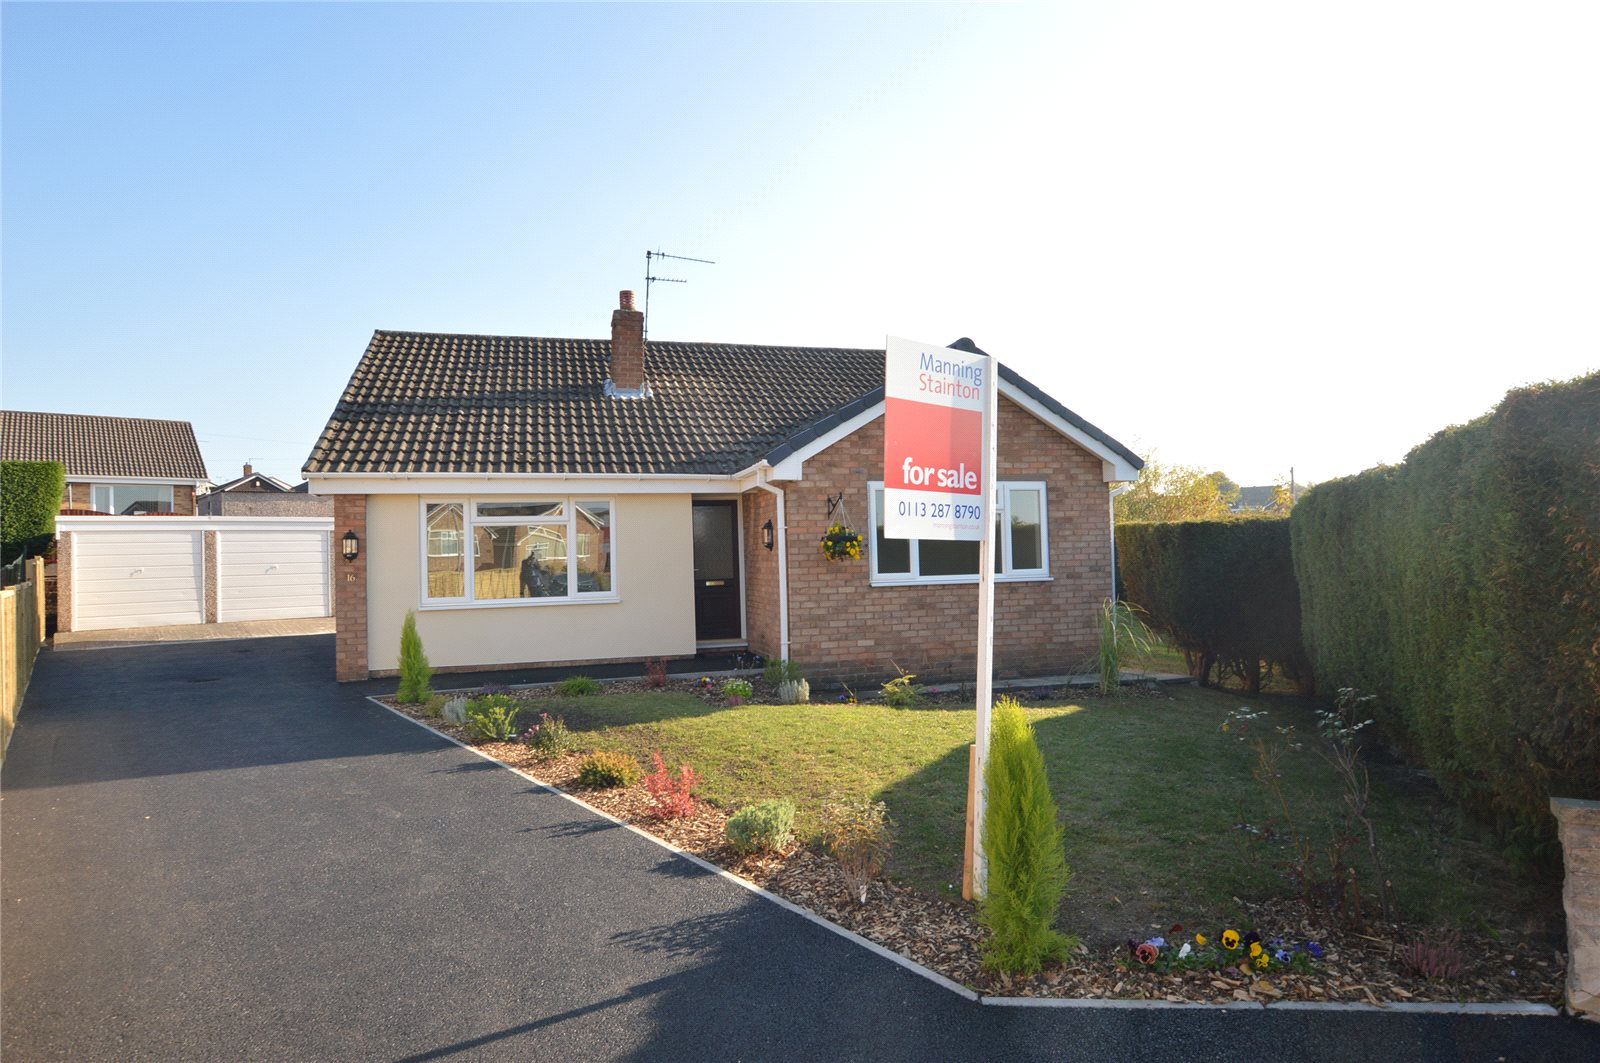 Property for sale in Garforth, exterior bungalow